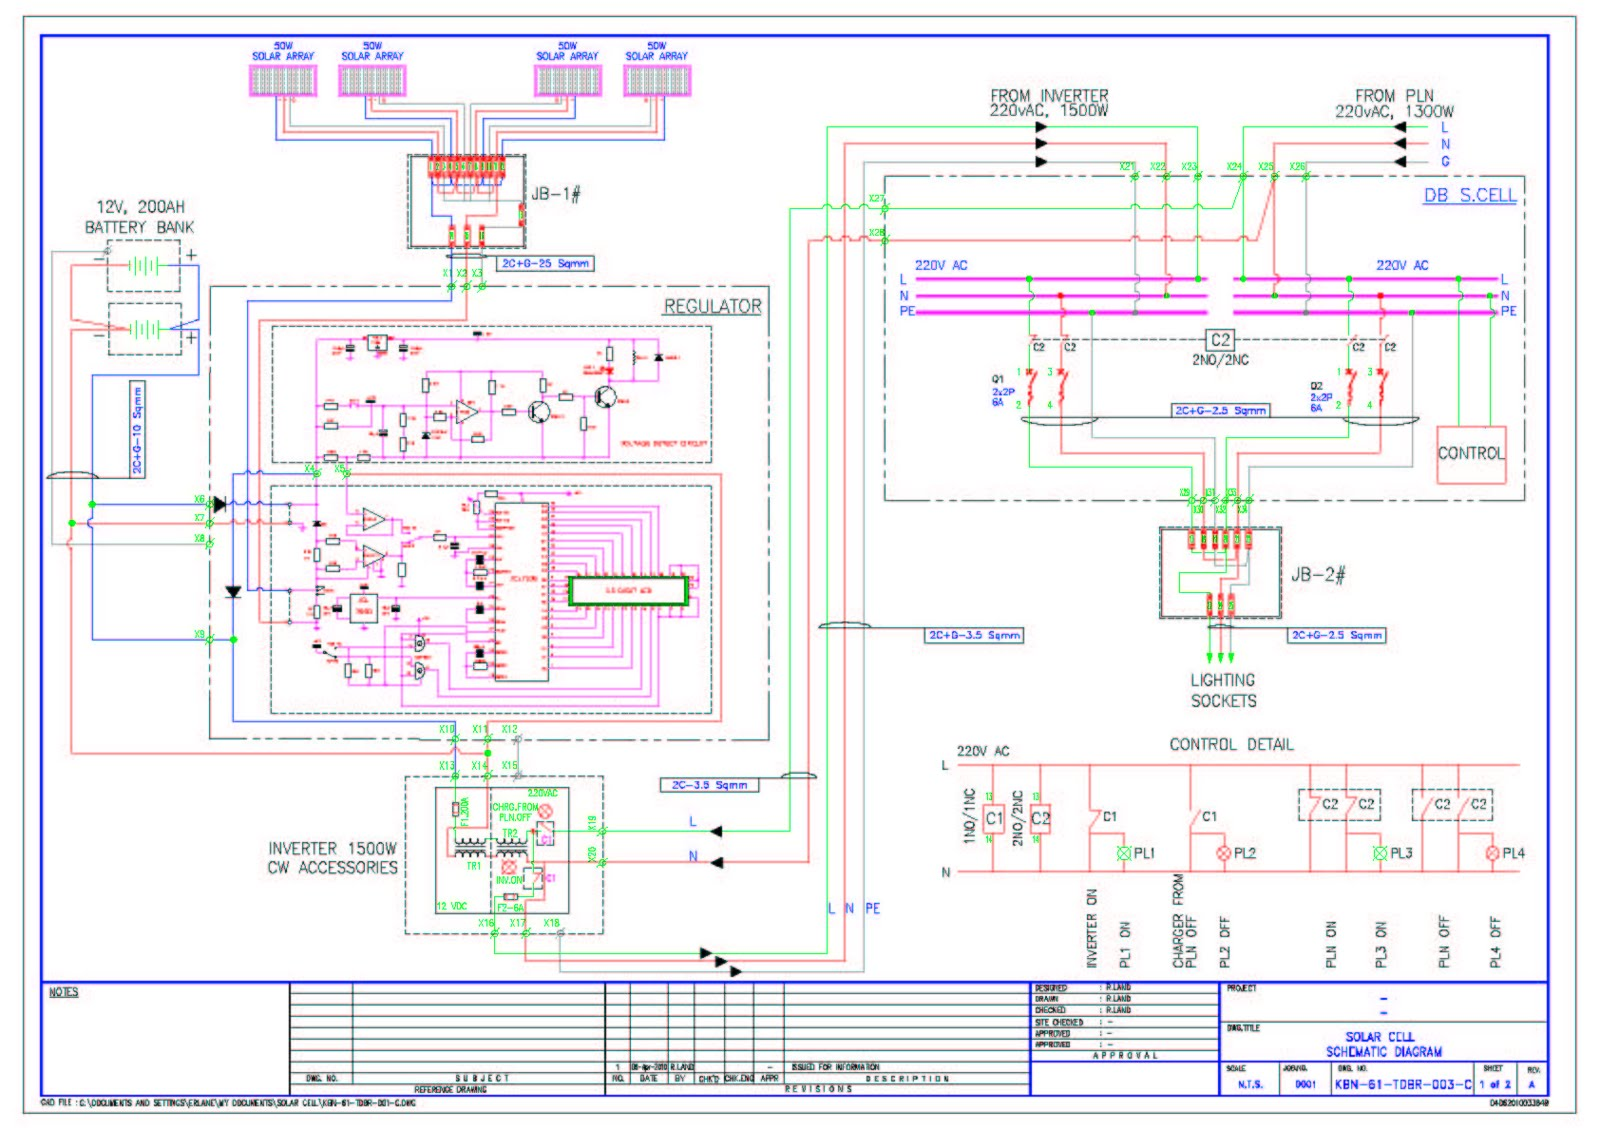 Honeywell 7400 Thermostat Wiring Diagram All Kind Of Diagrams Th3210d1004 Images Gallery